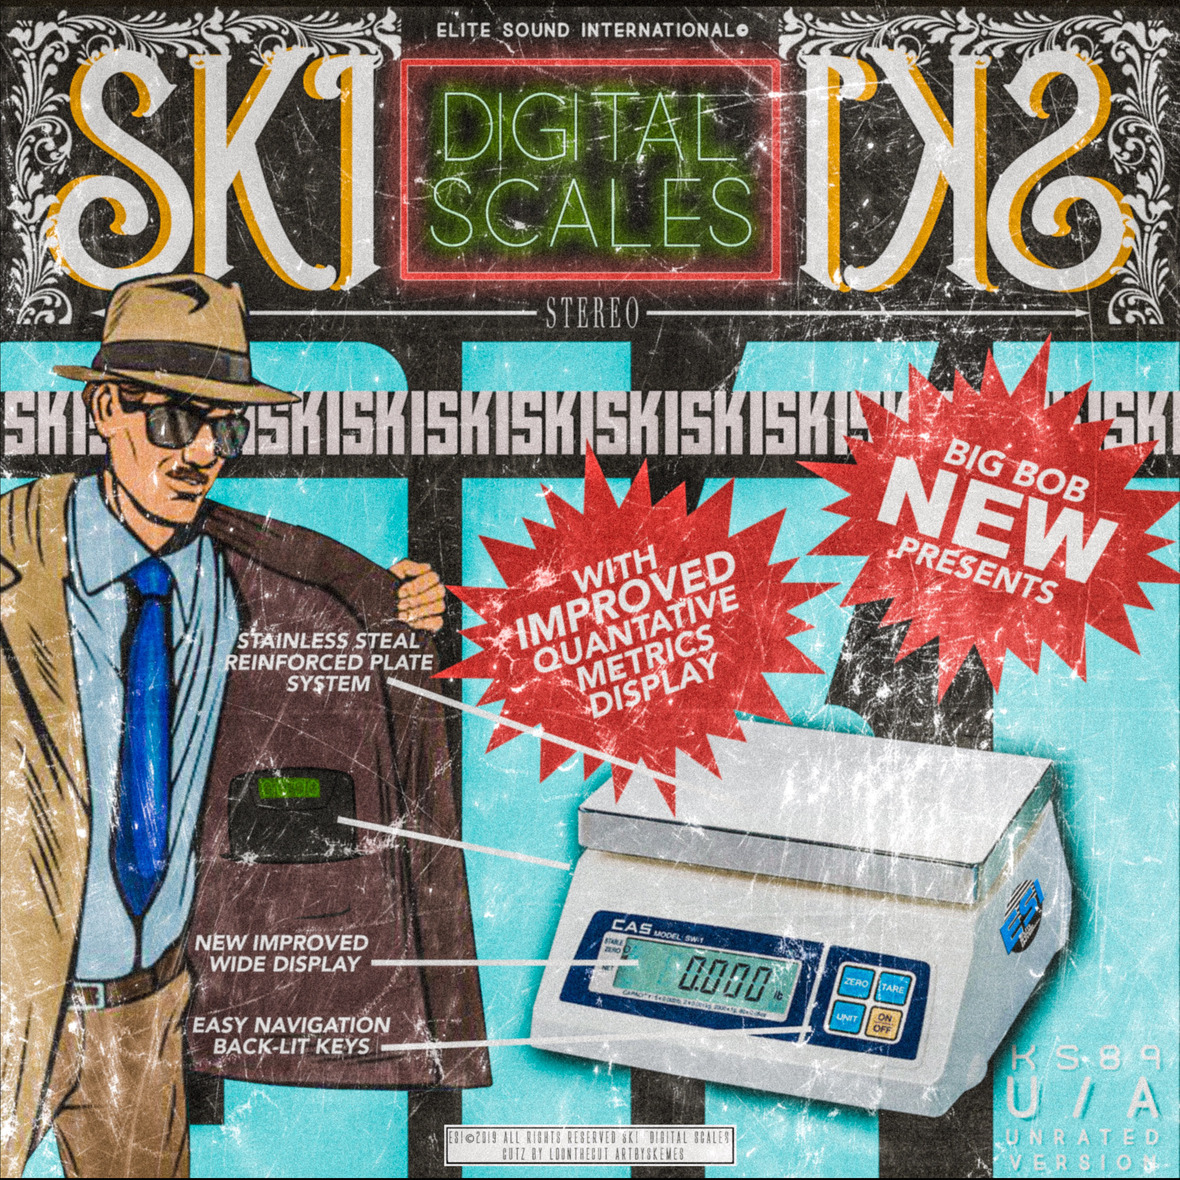 BigBob - Digital Scales ft Ski Prod. By BigBob (Cuts by LDontheCut)